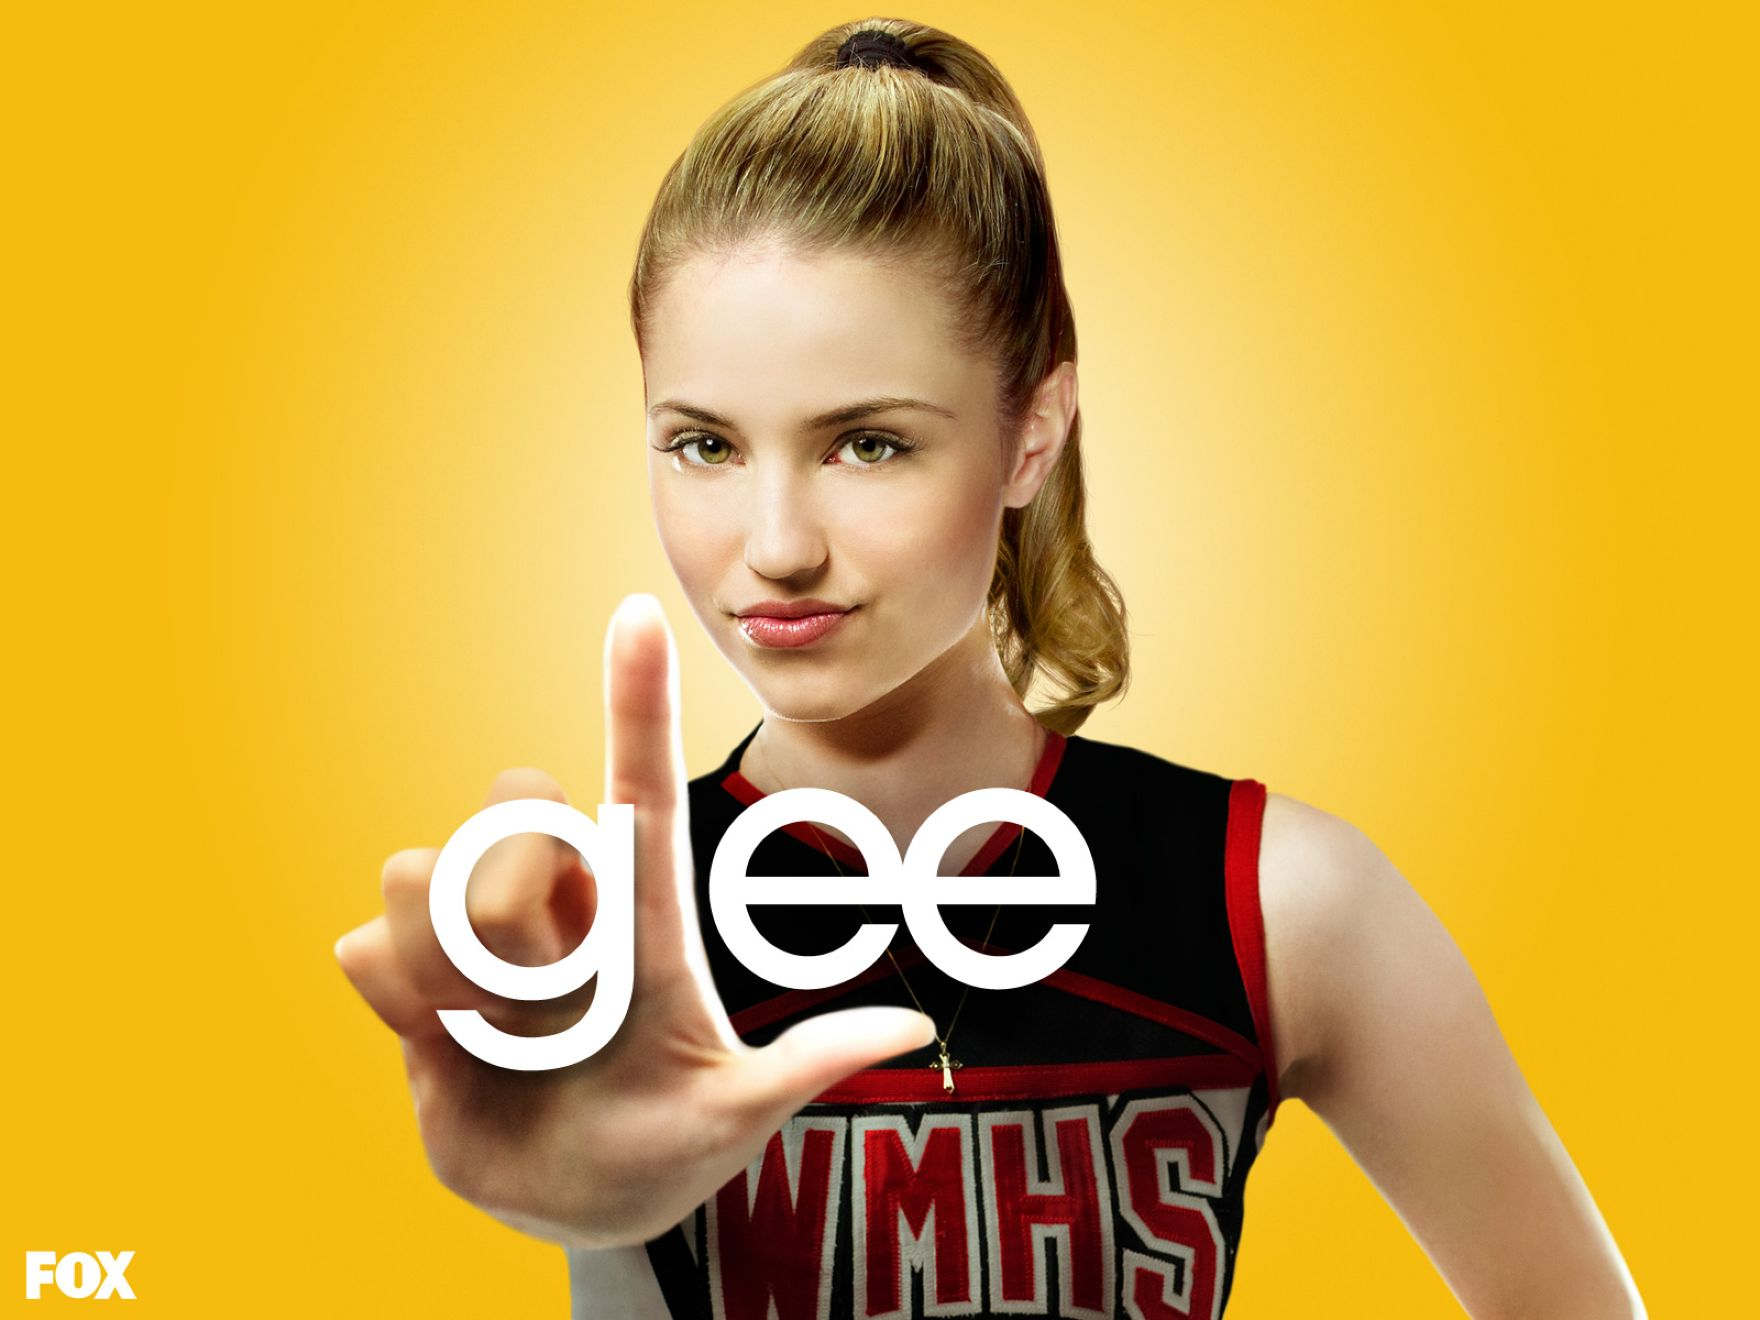 Dianna agron in glee normal wallpaper desktop hd wallpaper dianna agron in glee normal wallpaper voltagebd